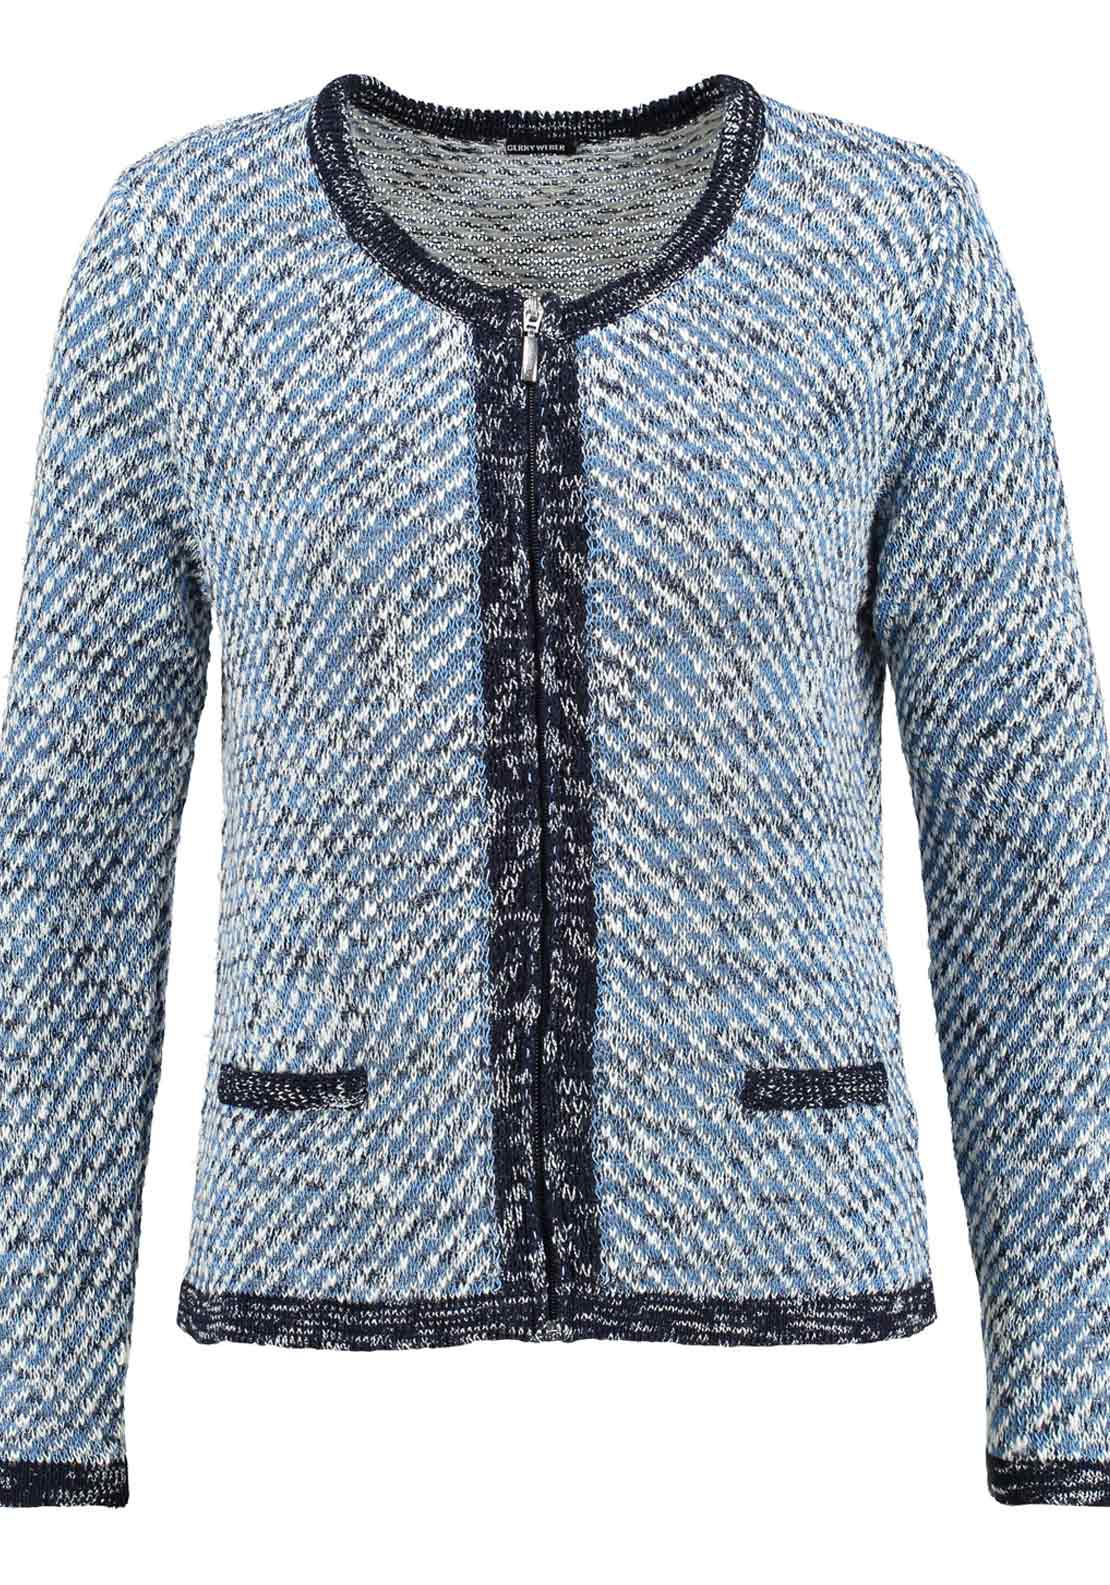 Gerry Weber Cotton Rich Knit Jacket, Blue